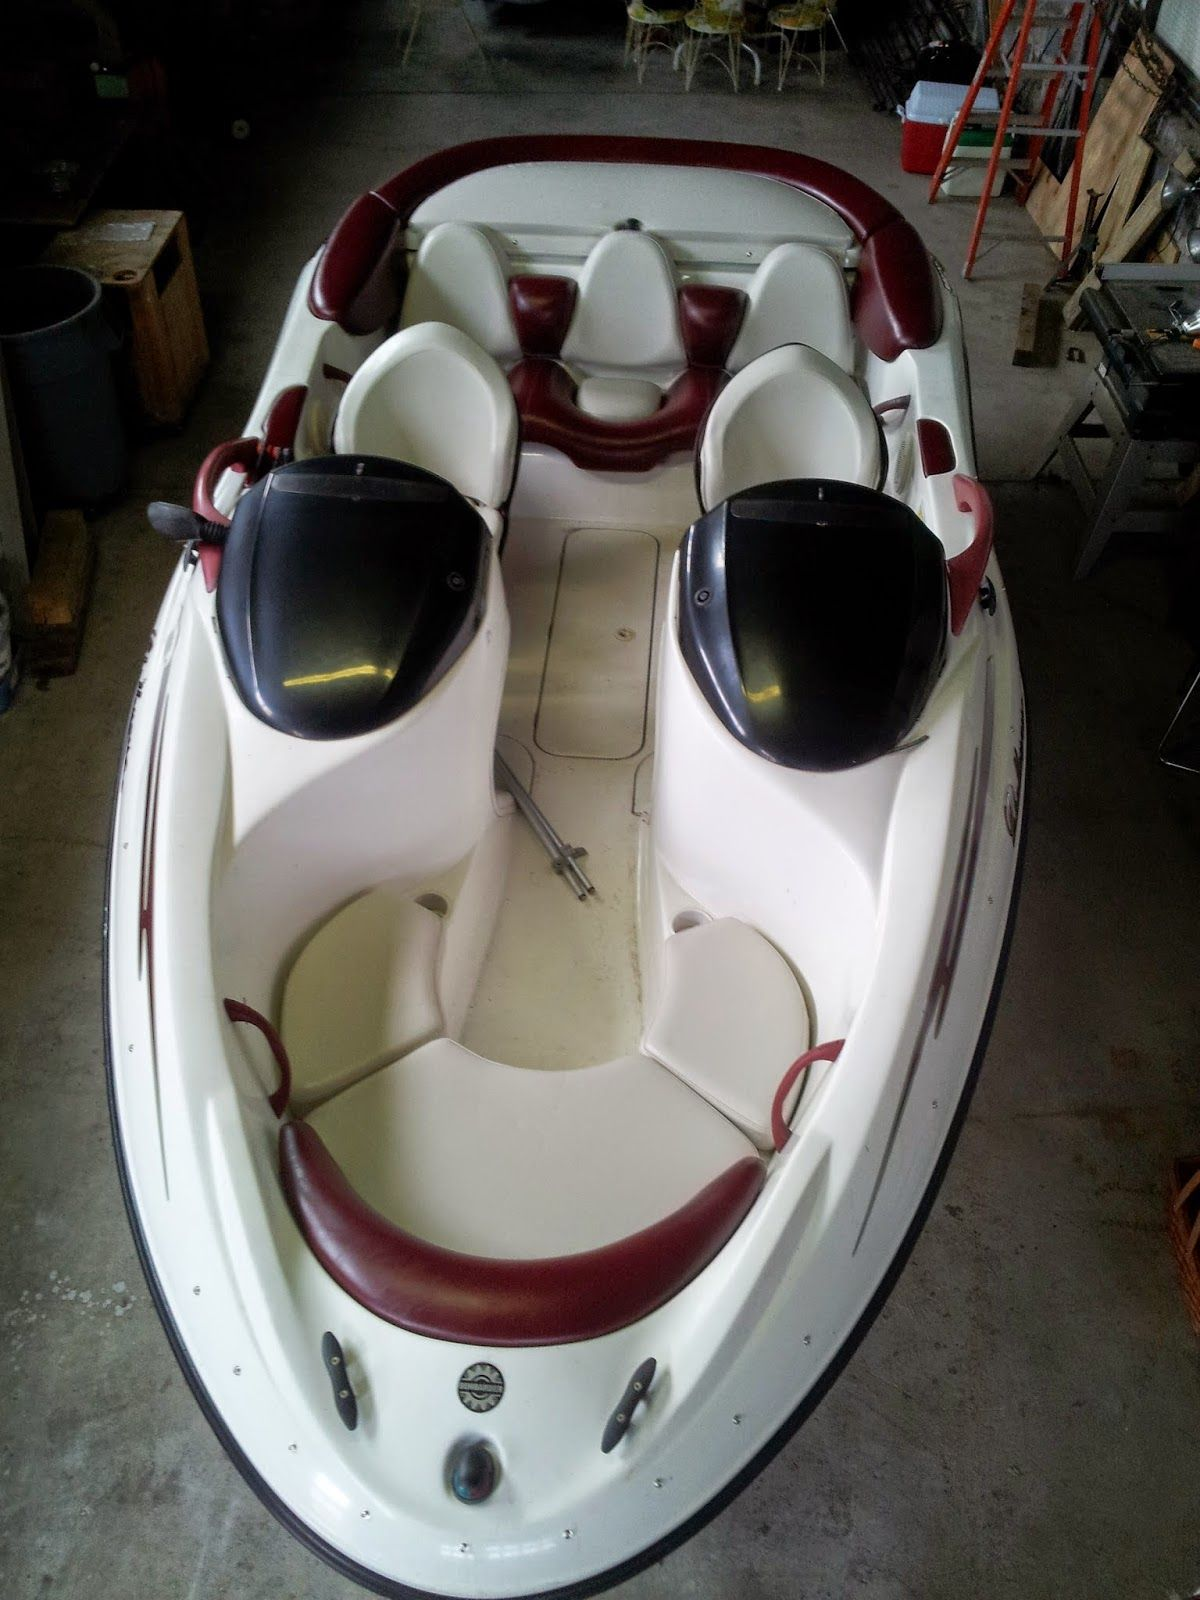 Homestyle Custom Upholstery And Awning Custom Jet Boat Interior And Maroon Cover Jet Boats Boat Interior Boat Upholstery